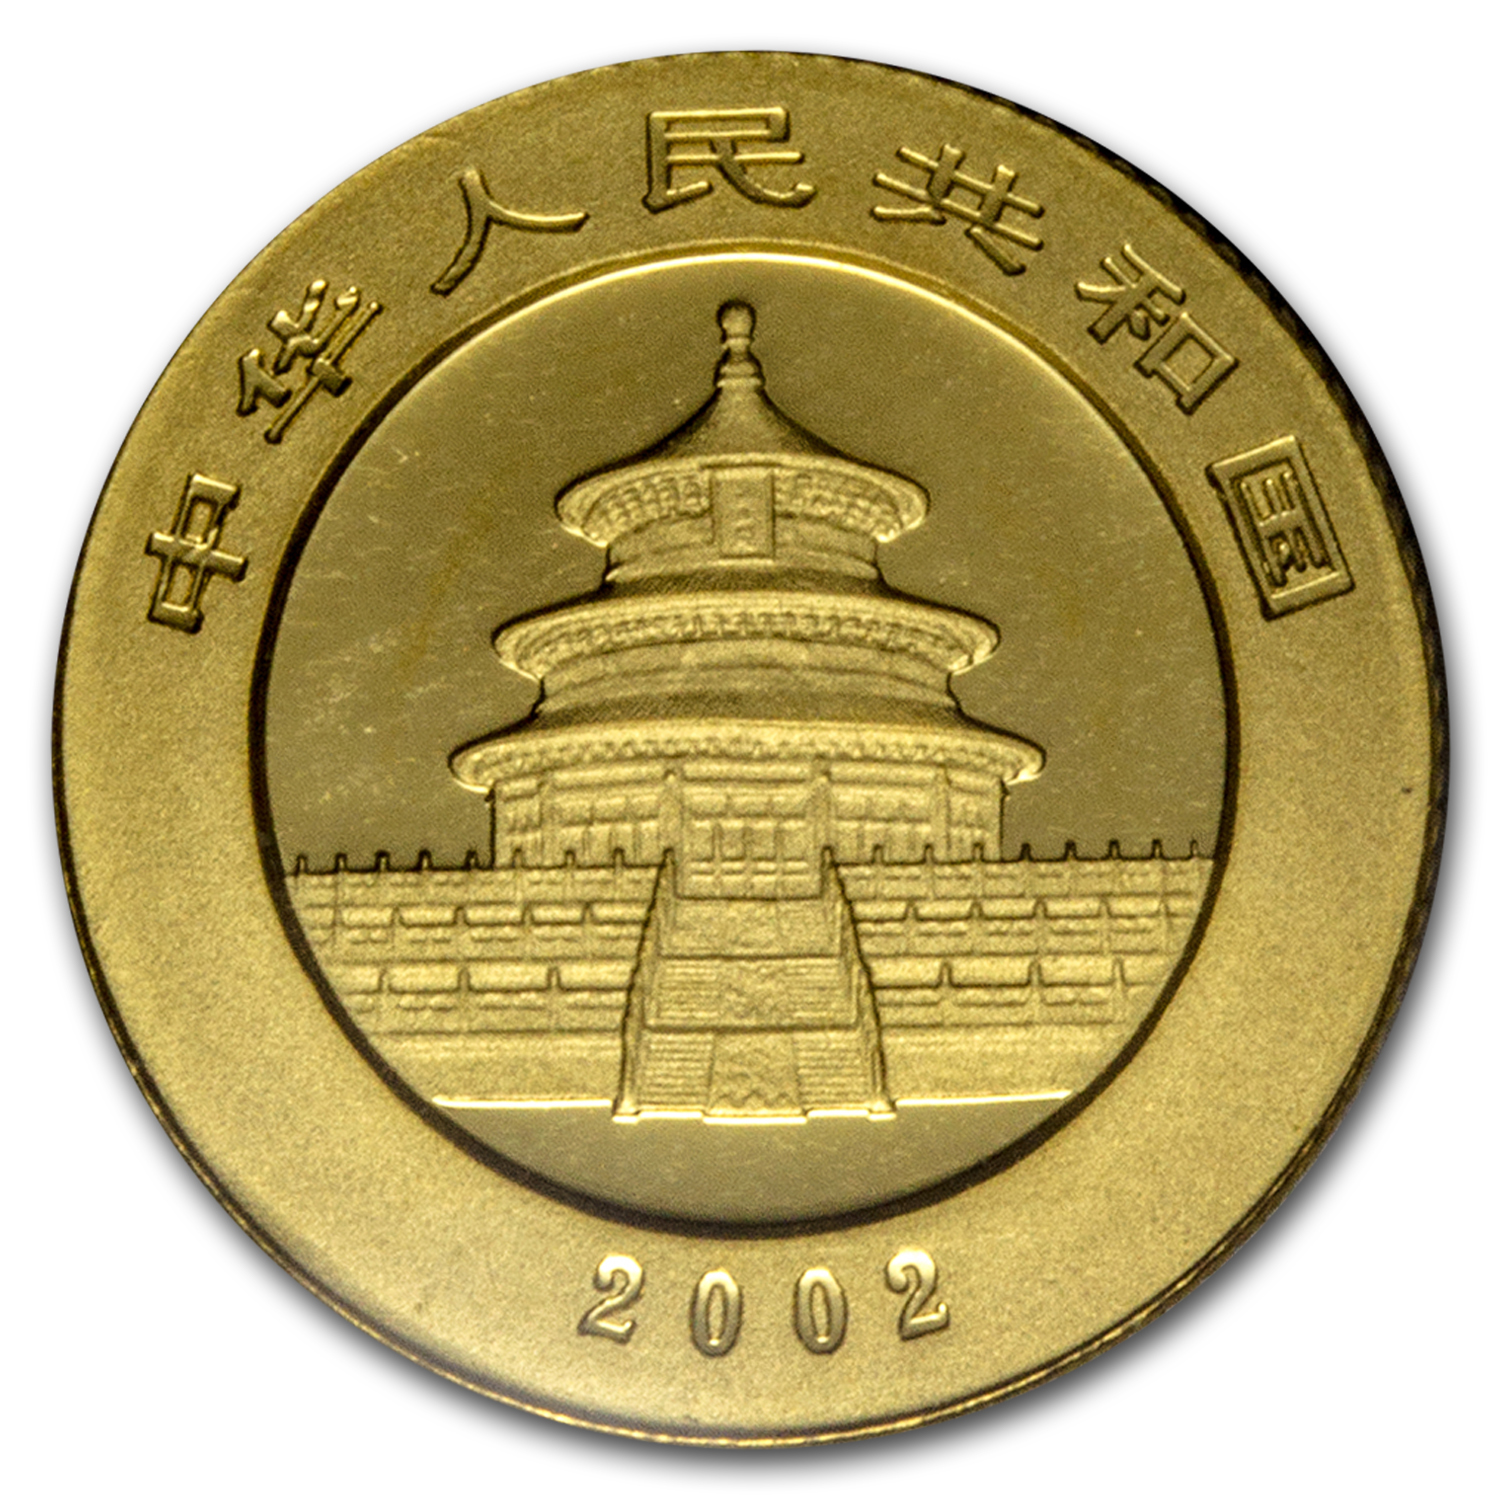 2002 China 1/20 oz Gold Panda BU (Sealed)